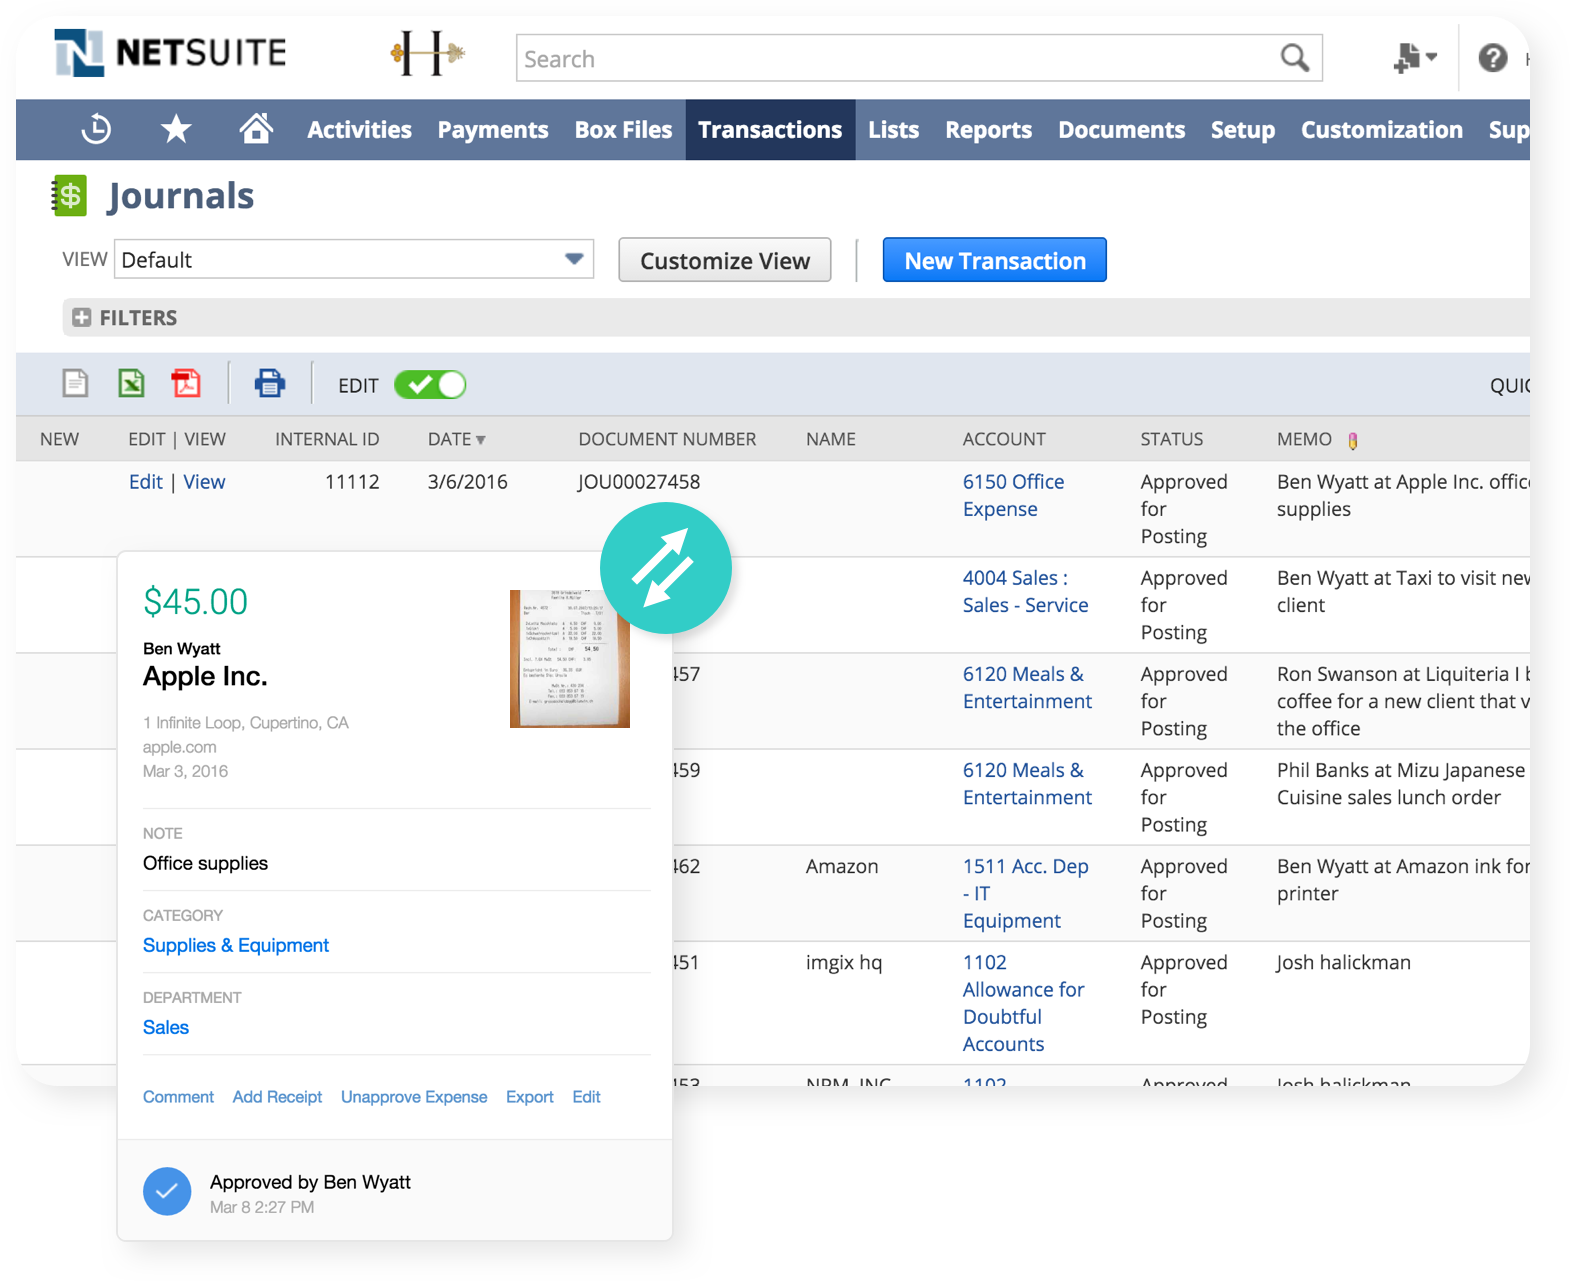 netsuite expense reporting software